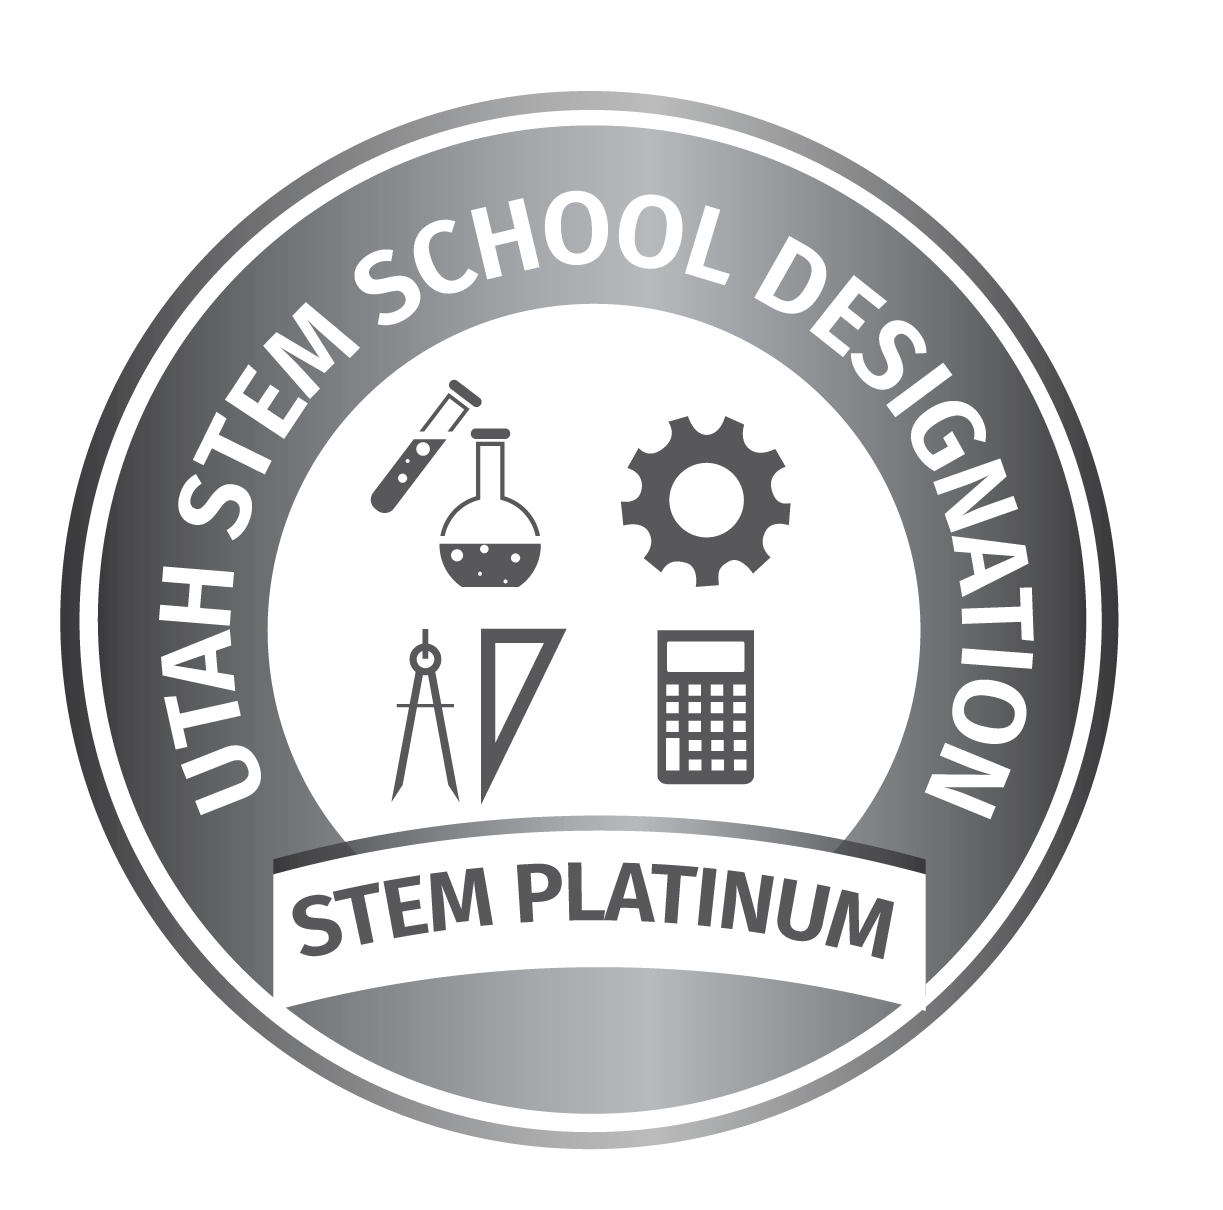 CVES STEM Platinum Award